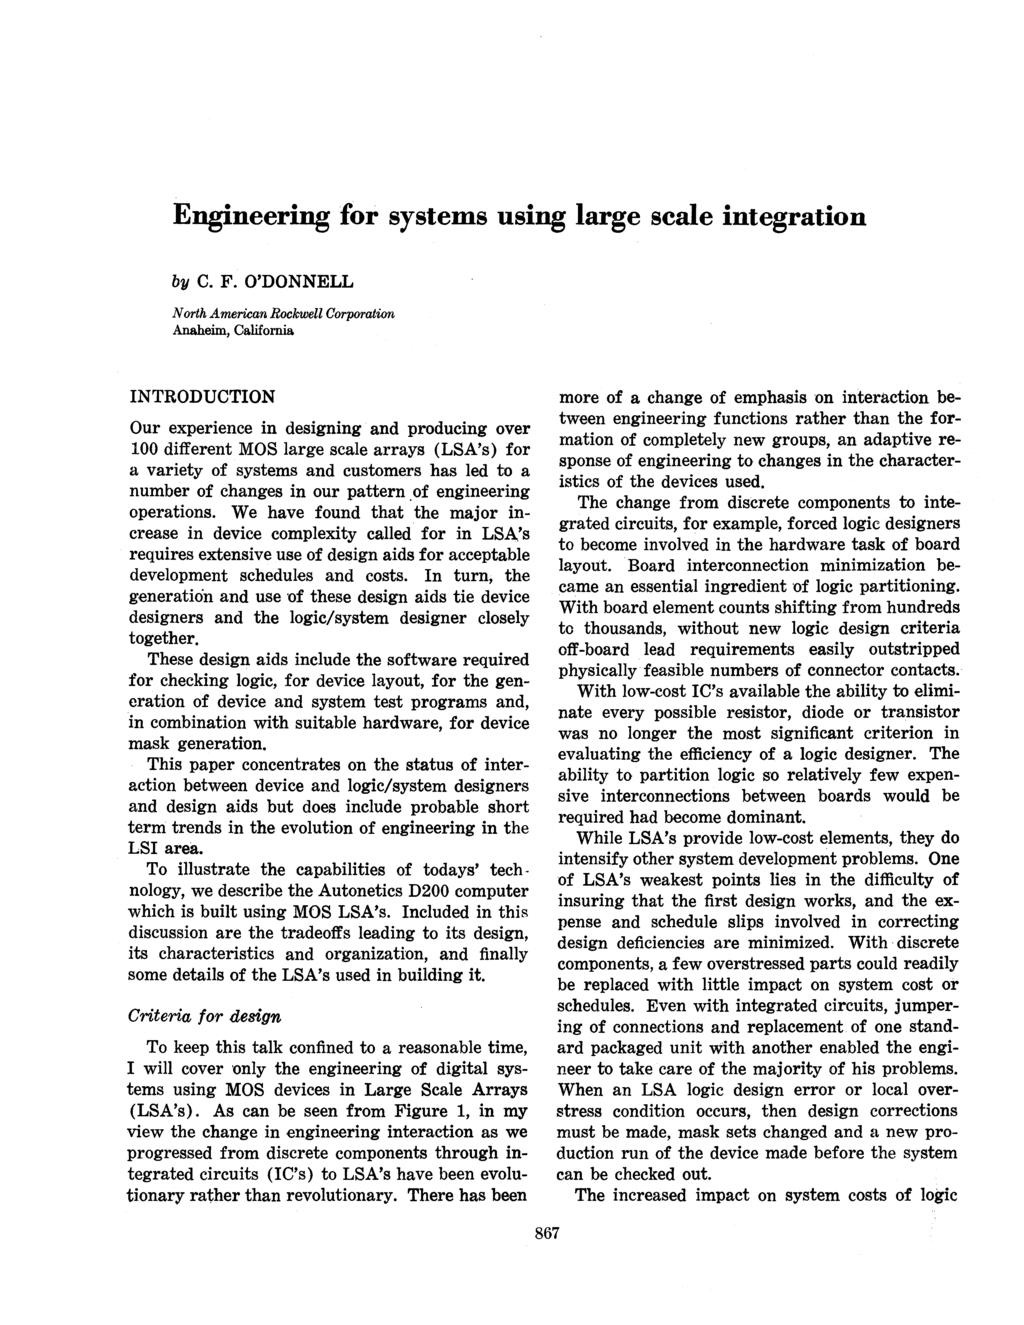 Engineering for systems using large scale integration by C. F.